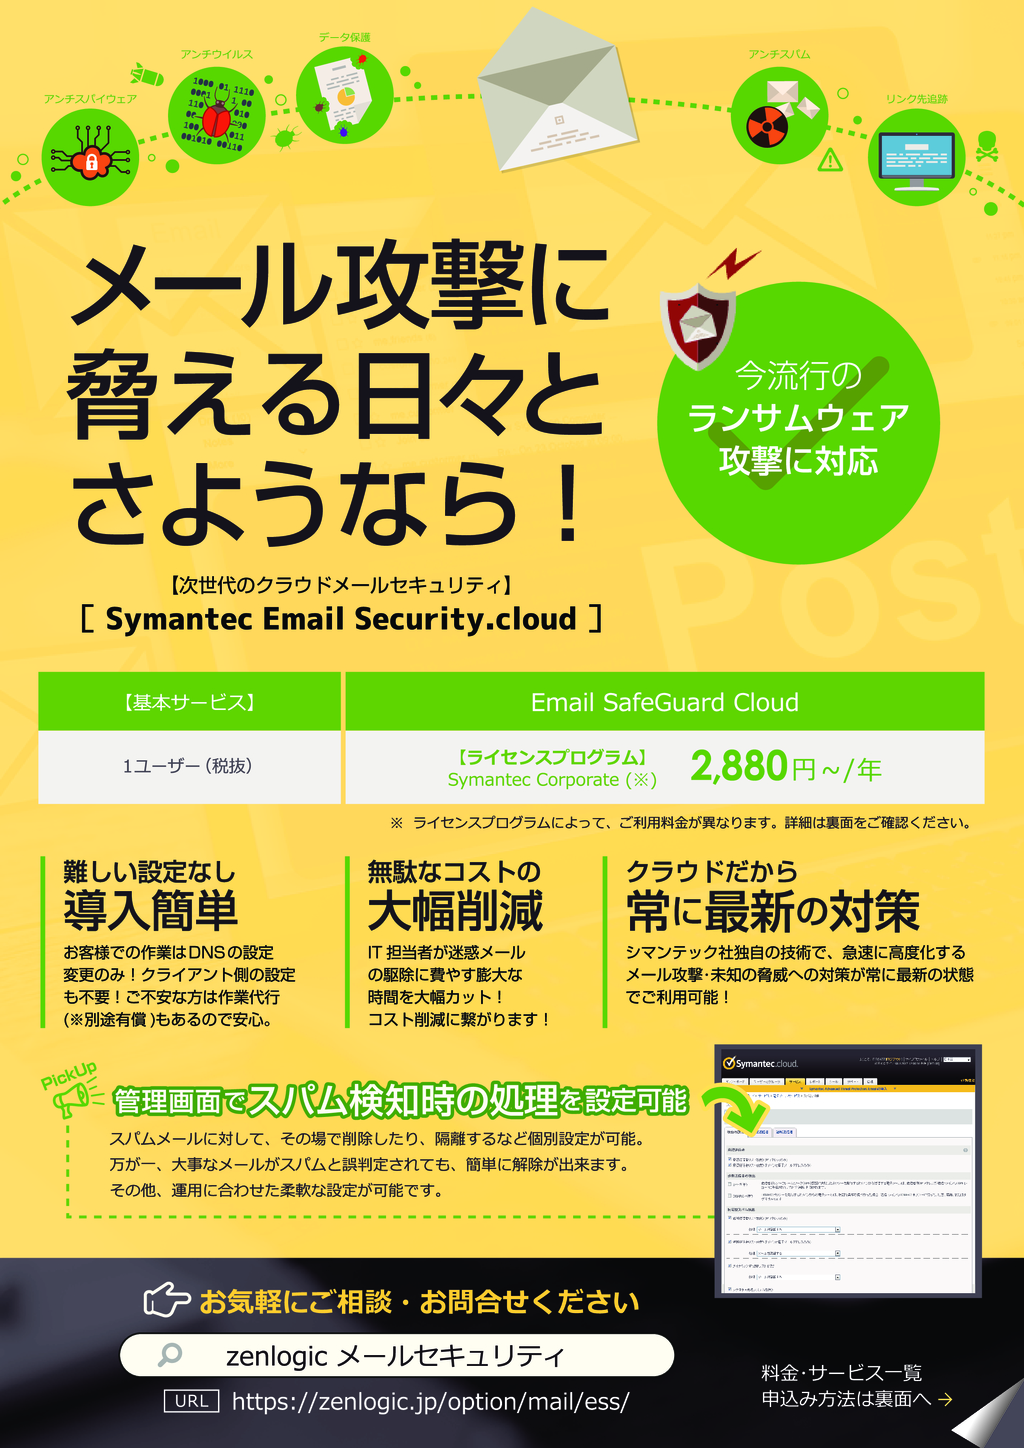 Symantec Email Security.cloudの資料